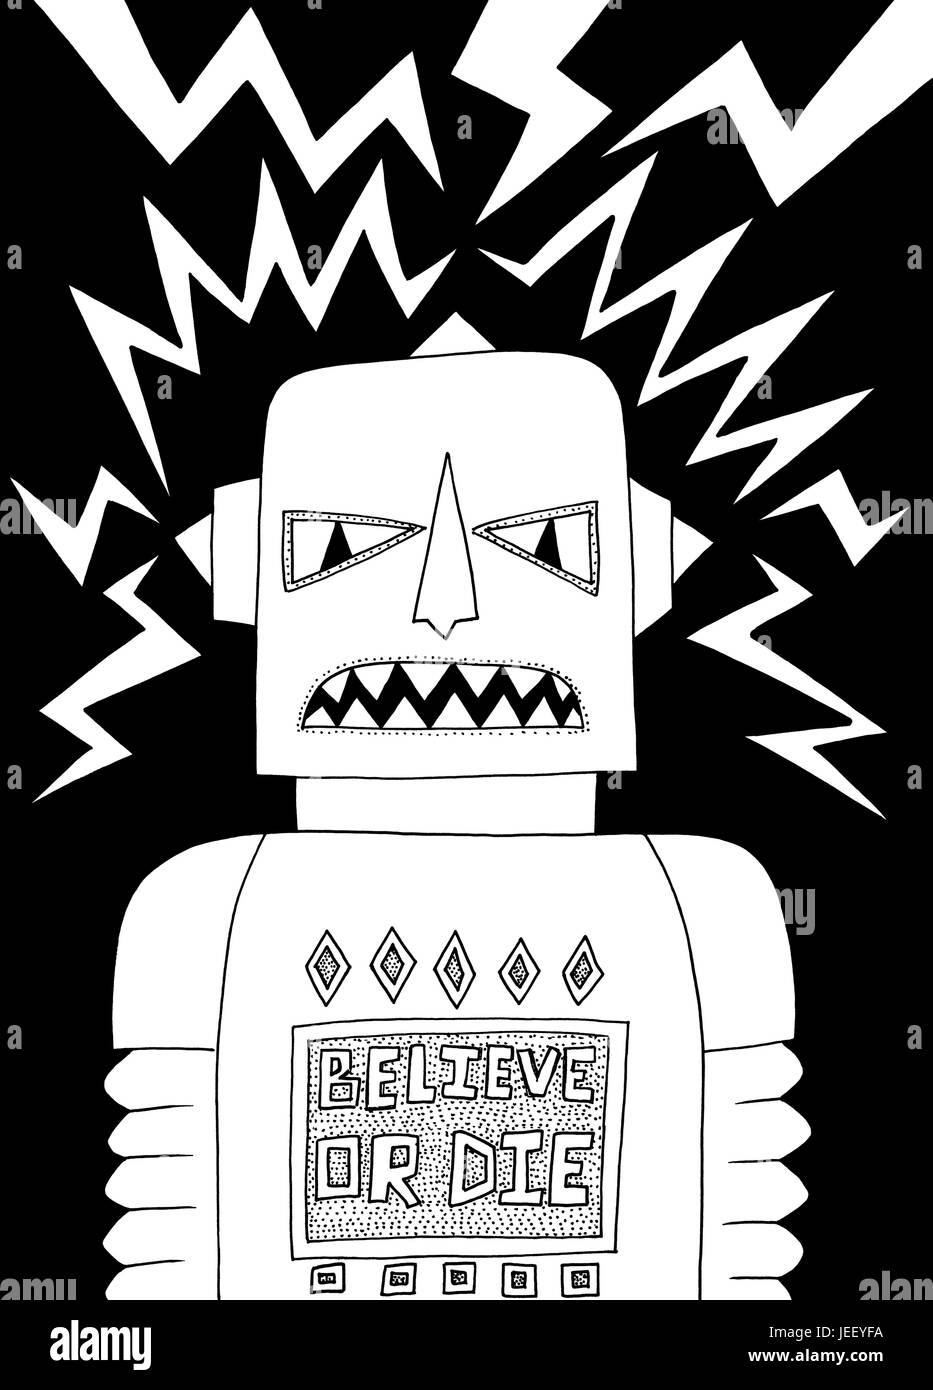 Believe. A black and white editorial illustration.Stock Photo